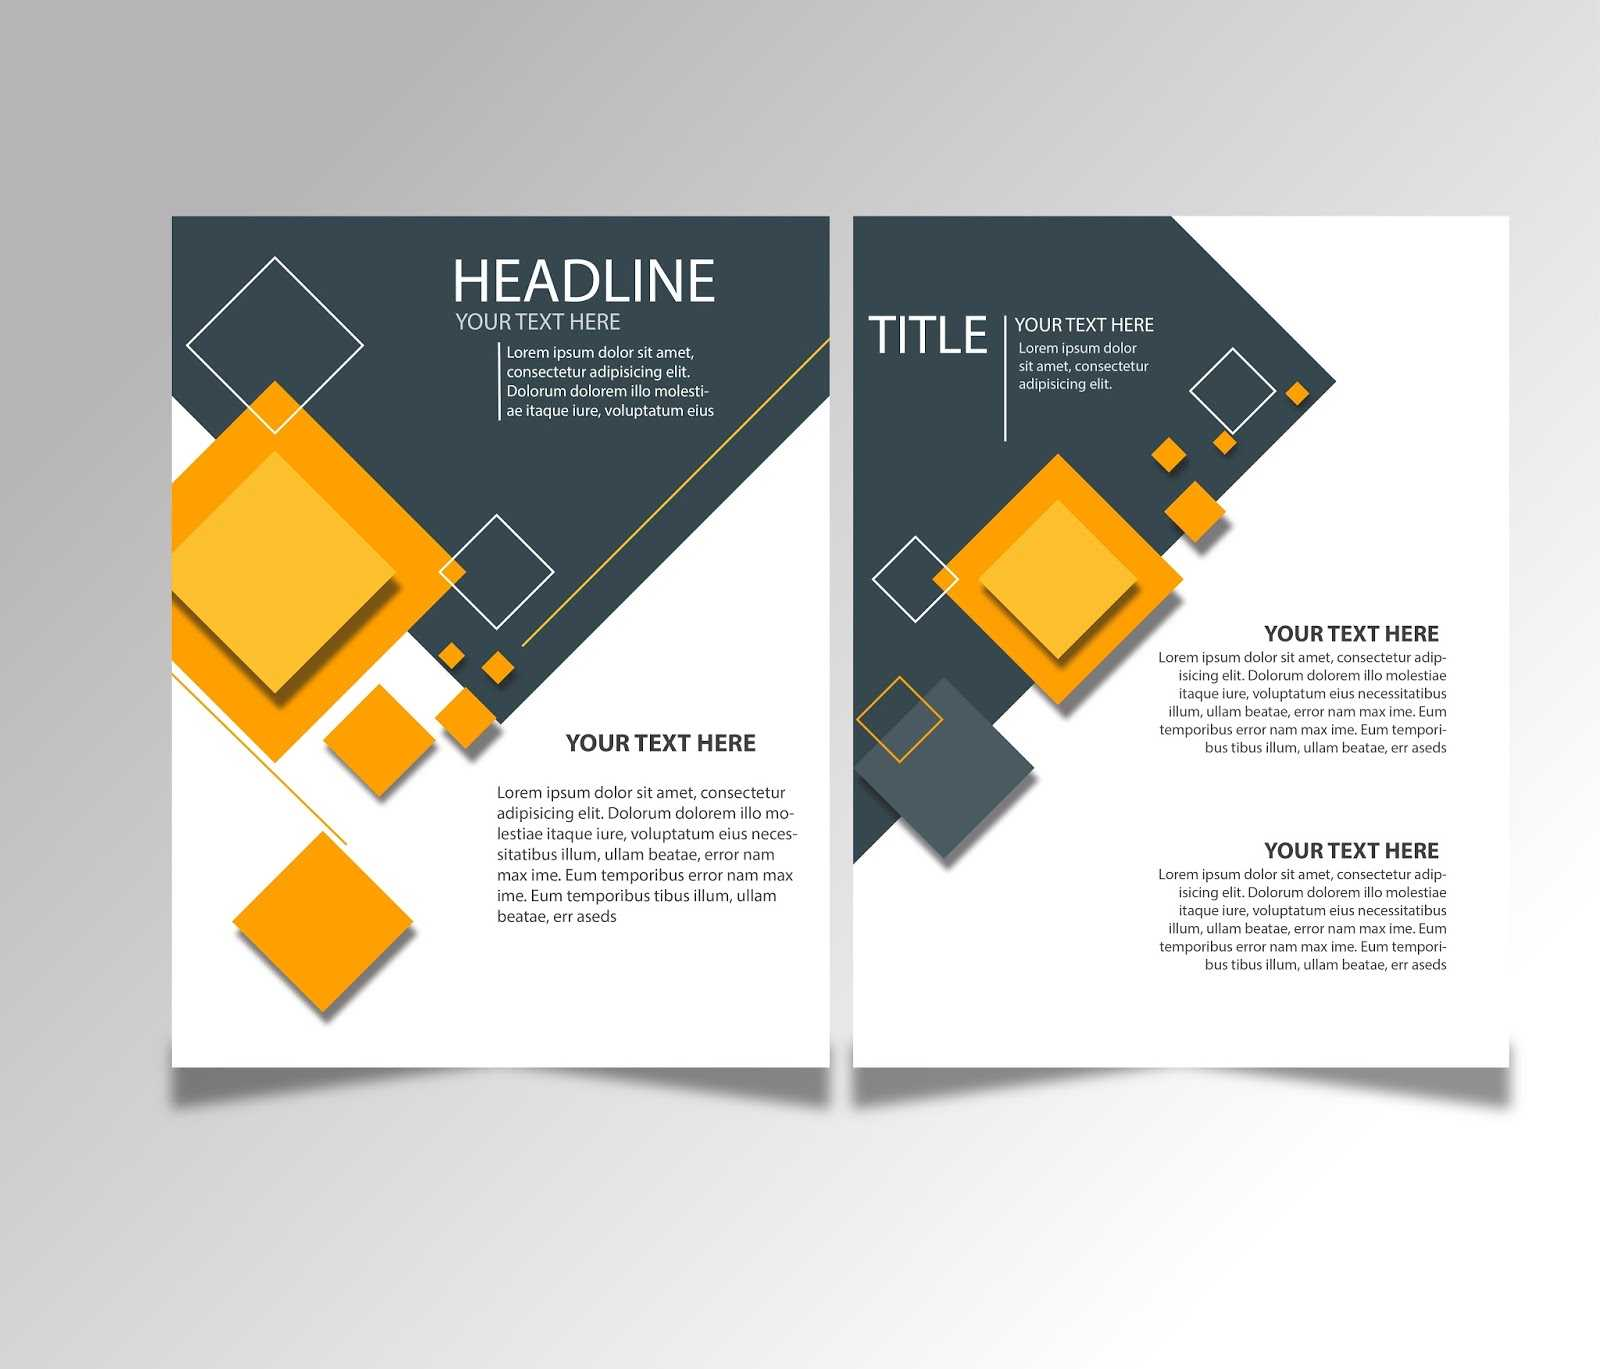 Template For Brochure Design Free Download - Vobace With Creative Brochure Templates Free Download